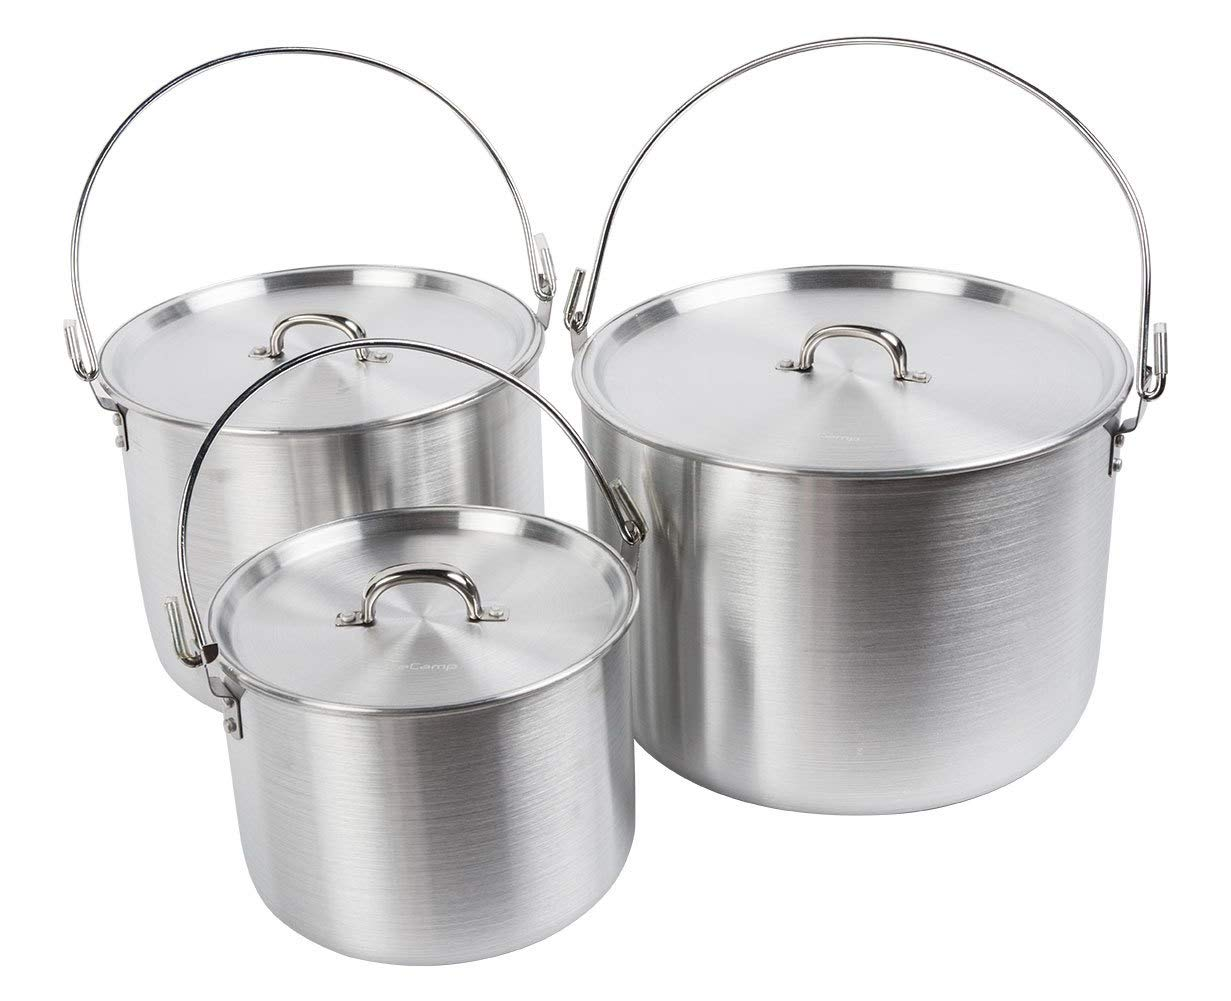 AceCamp Aluminum Cooking Pot, Camping Tribal Pot, Outdoor Picnic Cookware with Folding Handle, Durable Cook Kit for Dinner, Backpacking, Hiking - 4/8/12 L (3 Pot Set (4/8/12 L)) by AceCamp